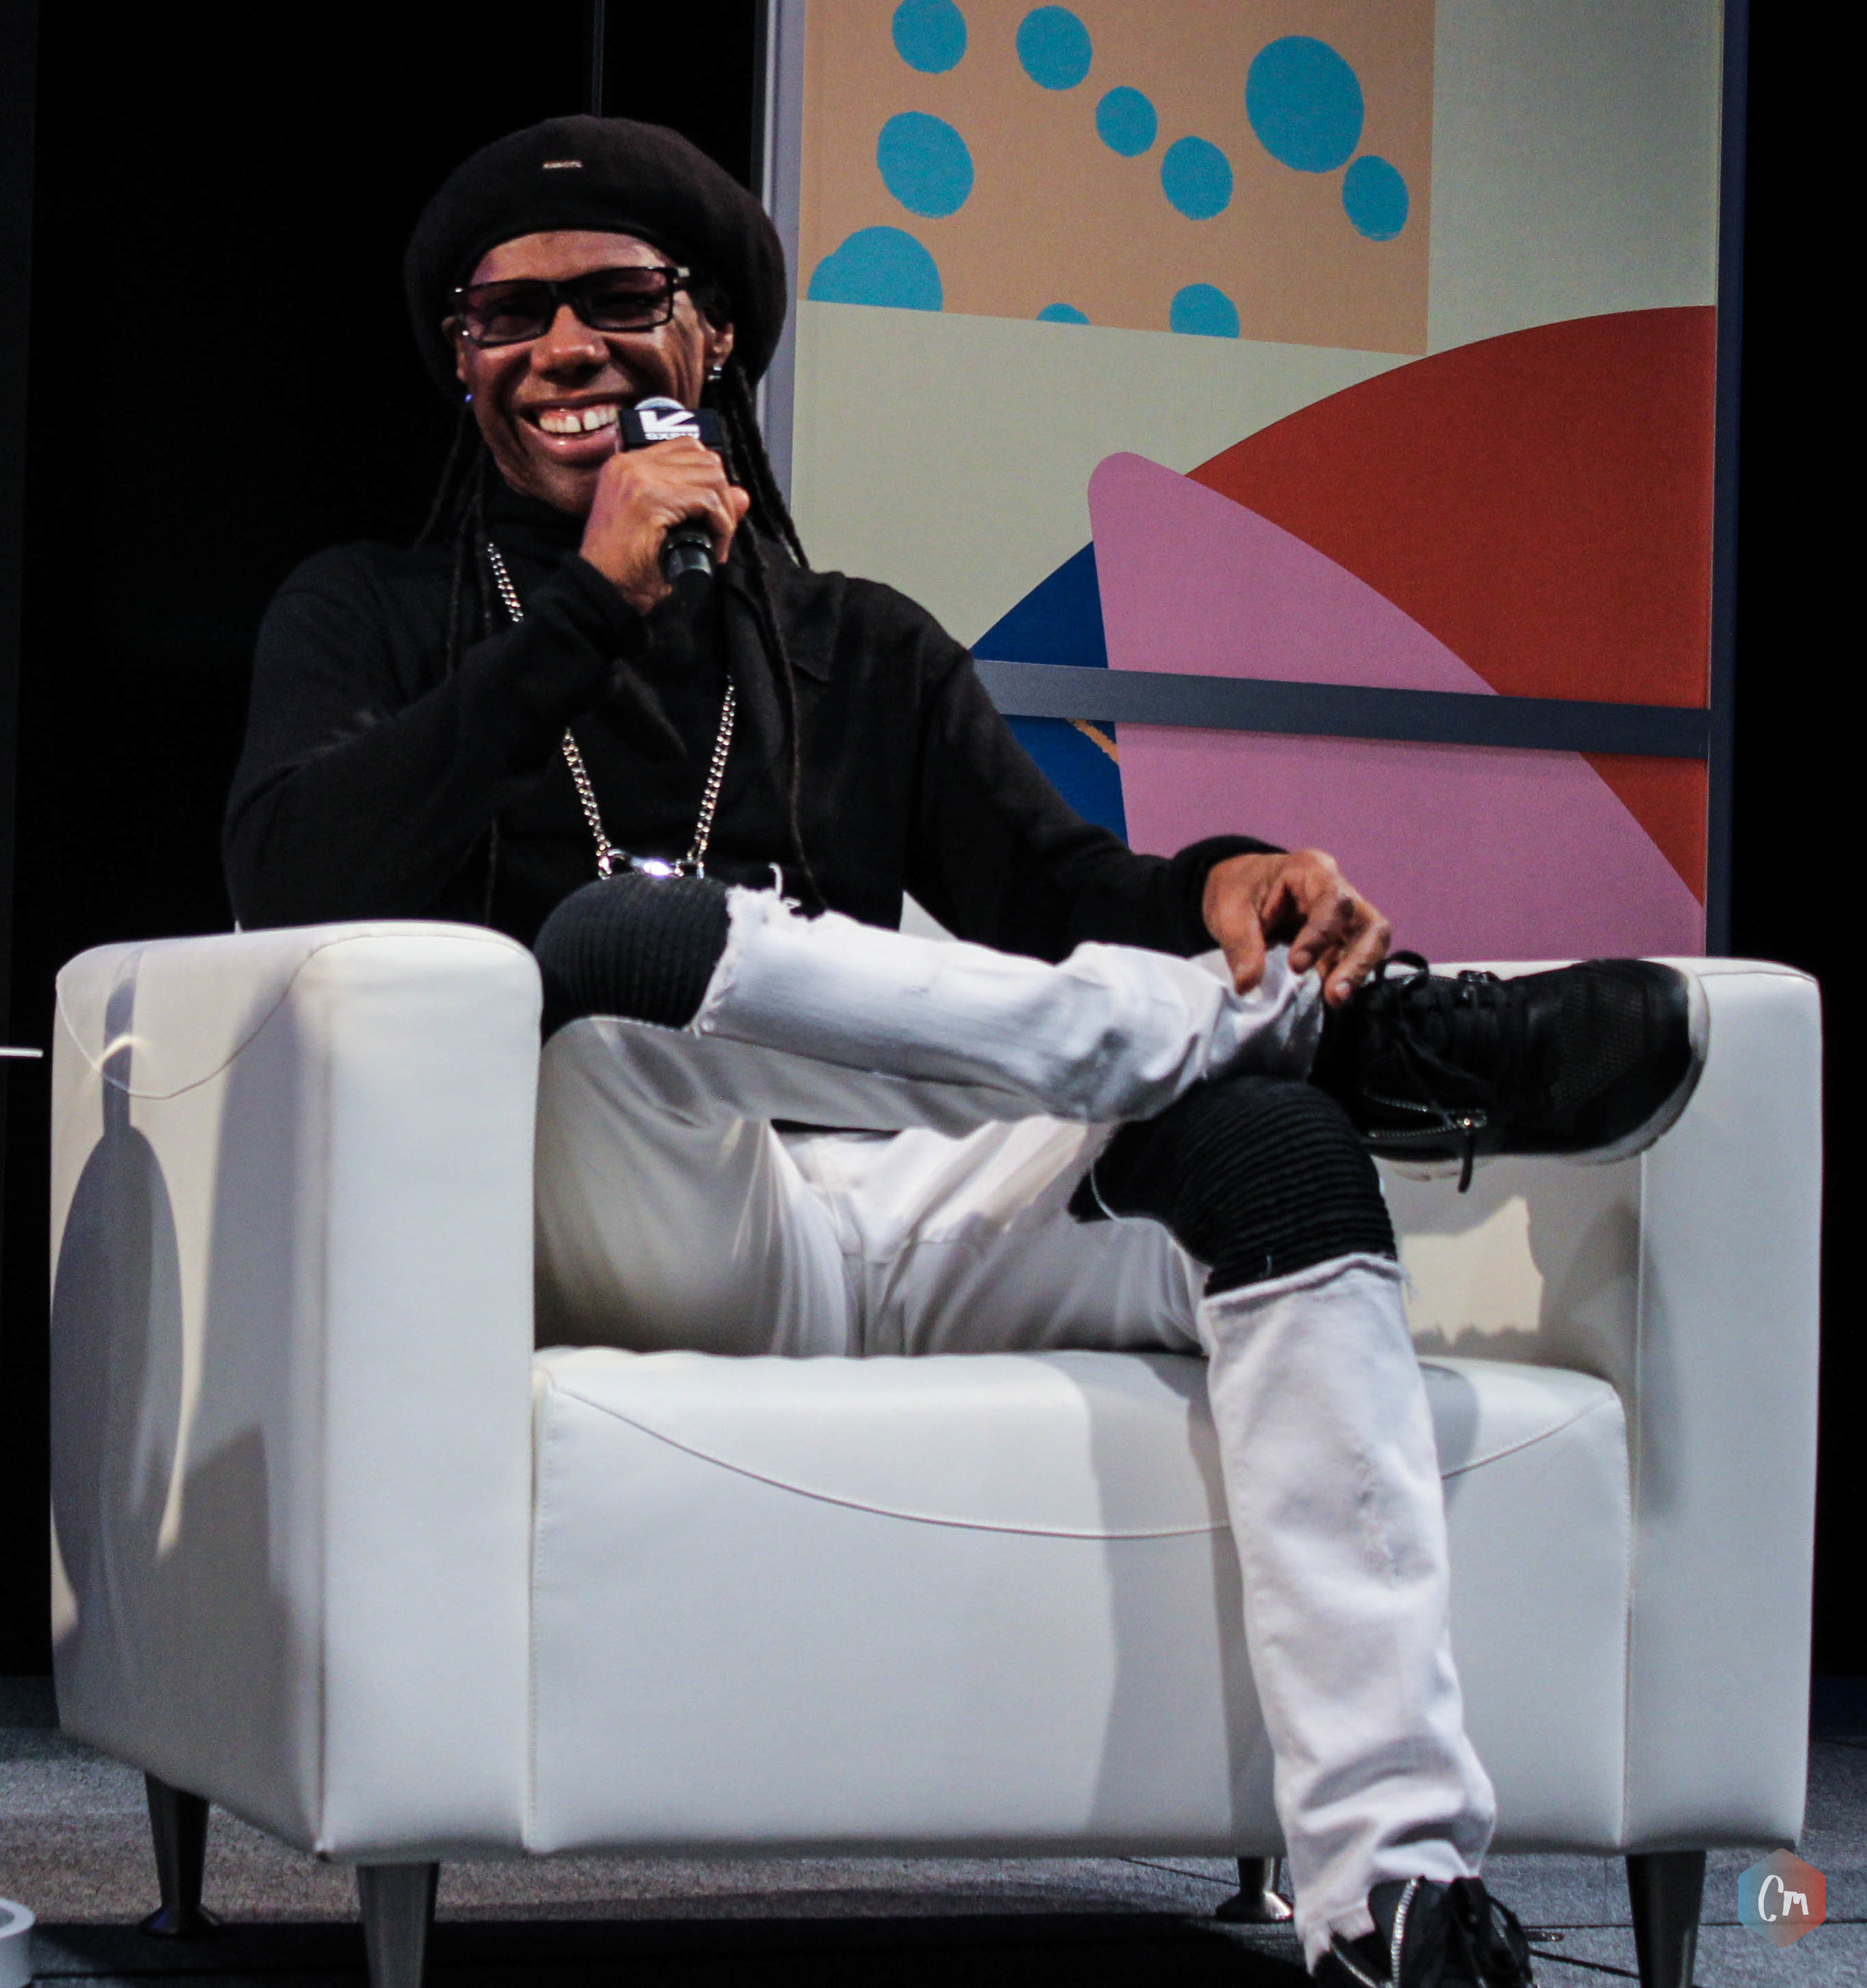 Nile Rodgers at SXSW - Photo © Concentus Music - Reproduction without permission not permitted